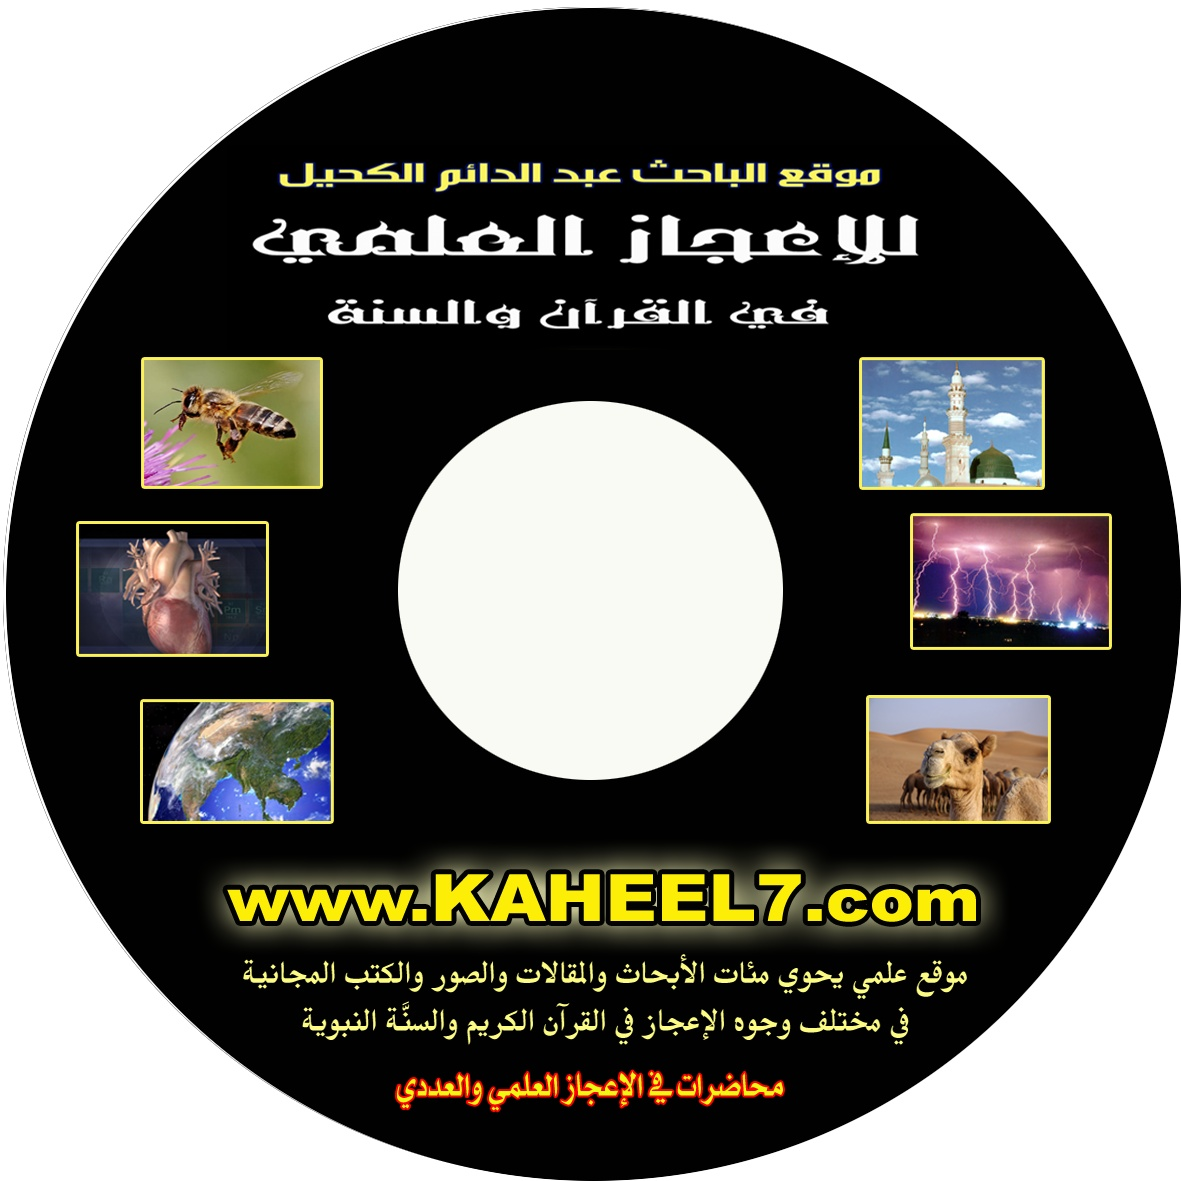 http://www.kaheel7.com/userimages/CD_inside.JPG